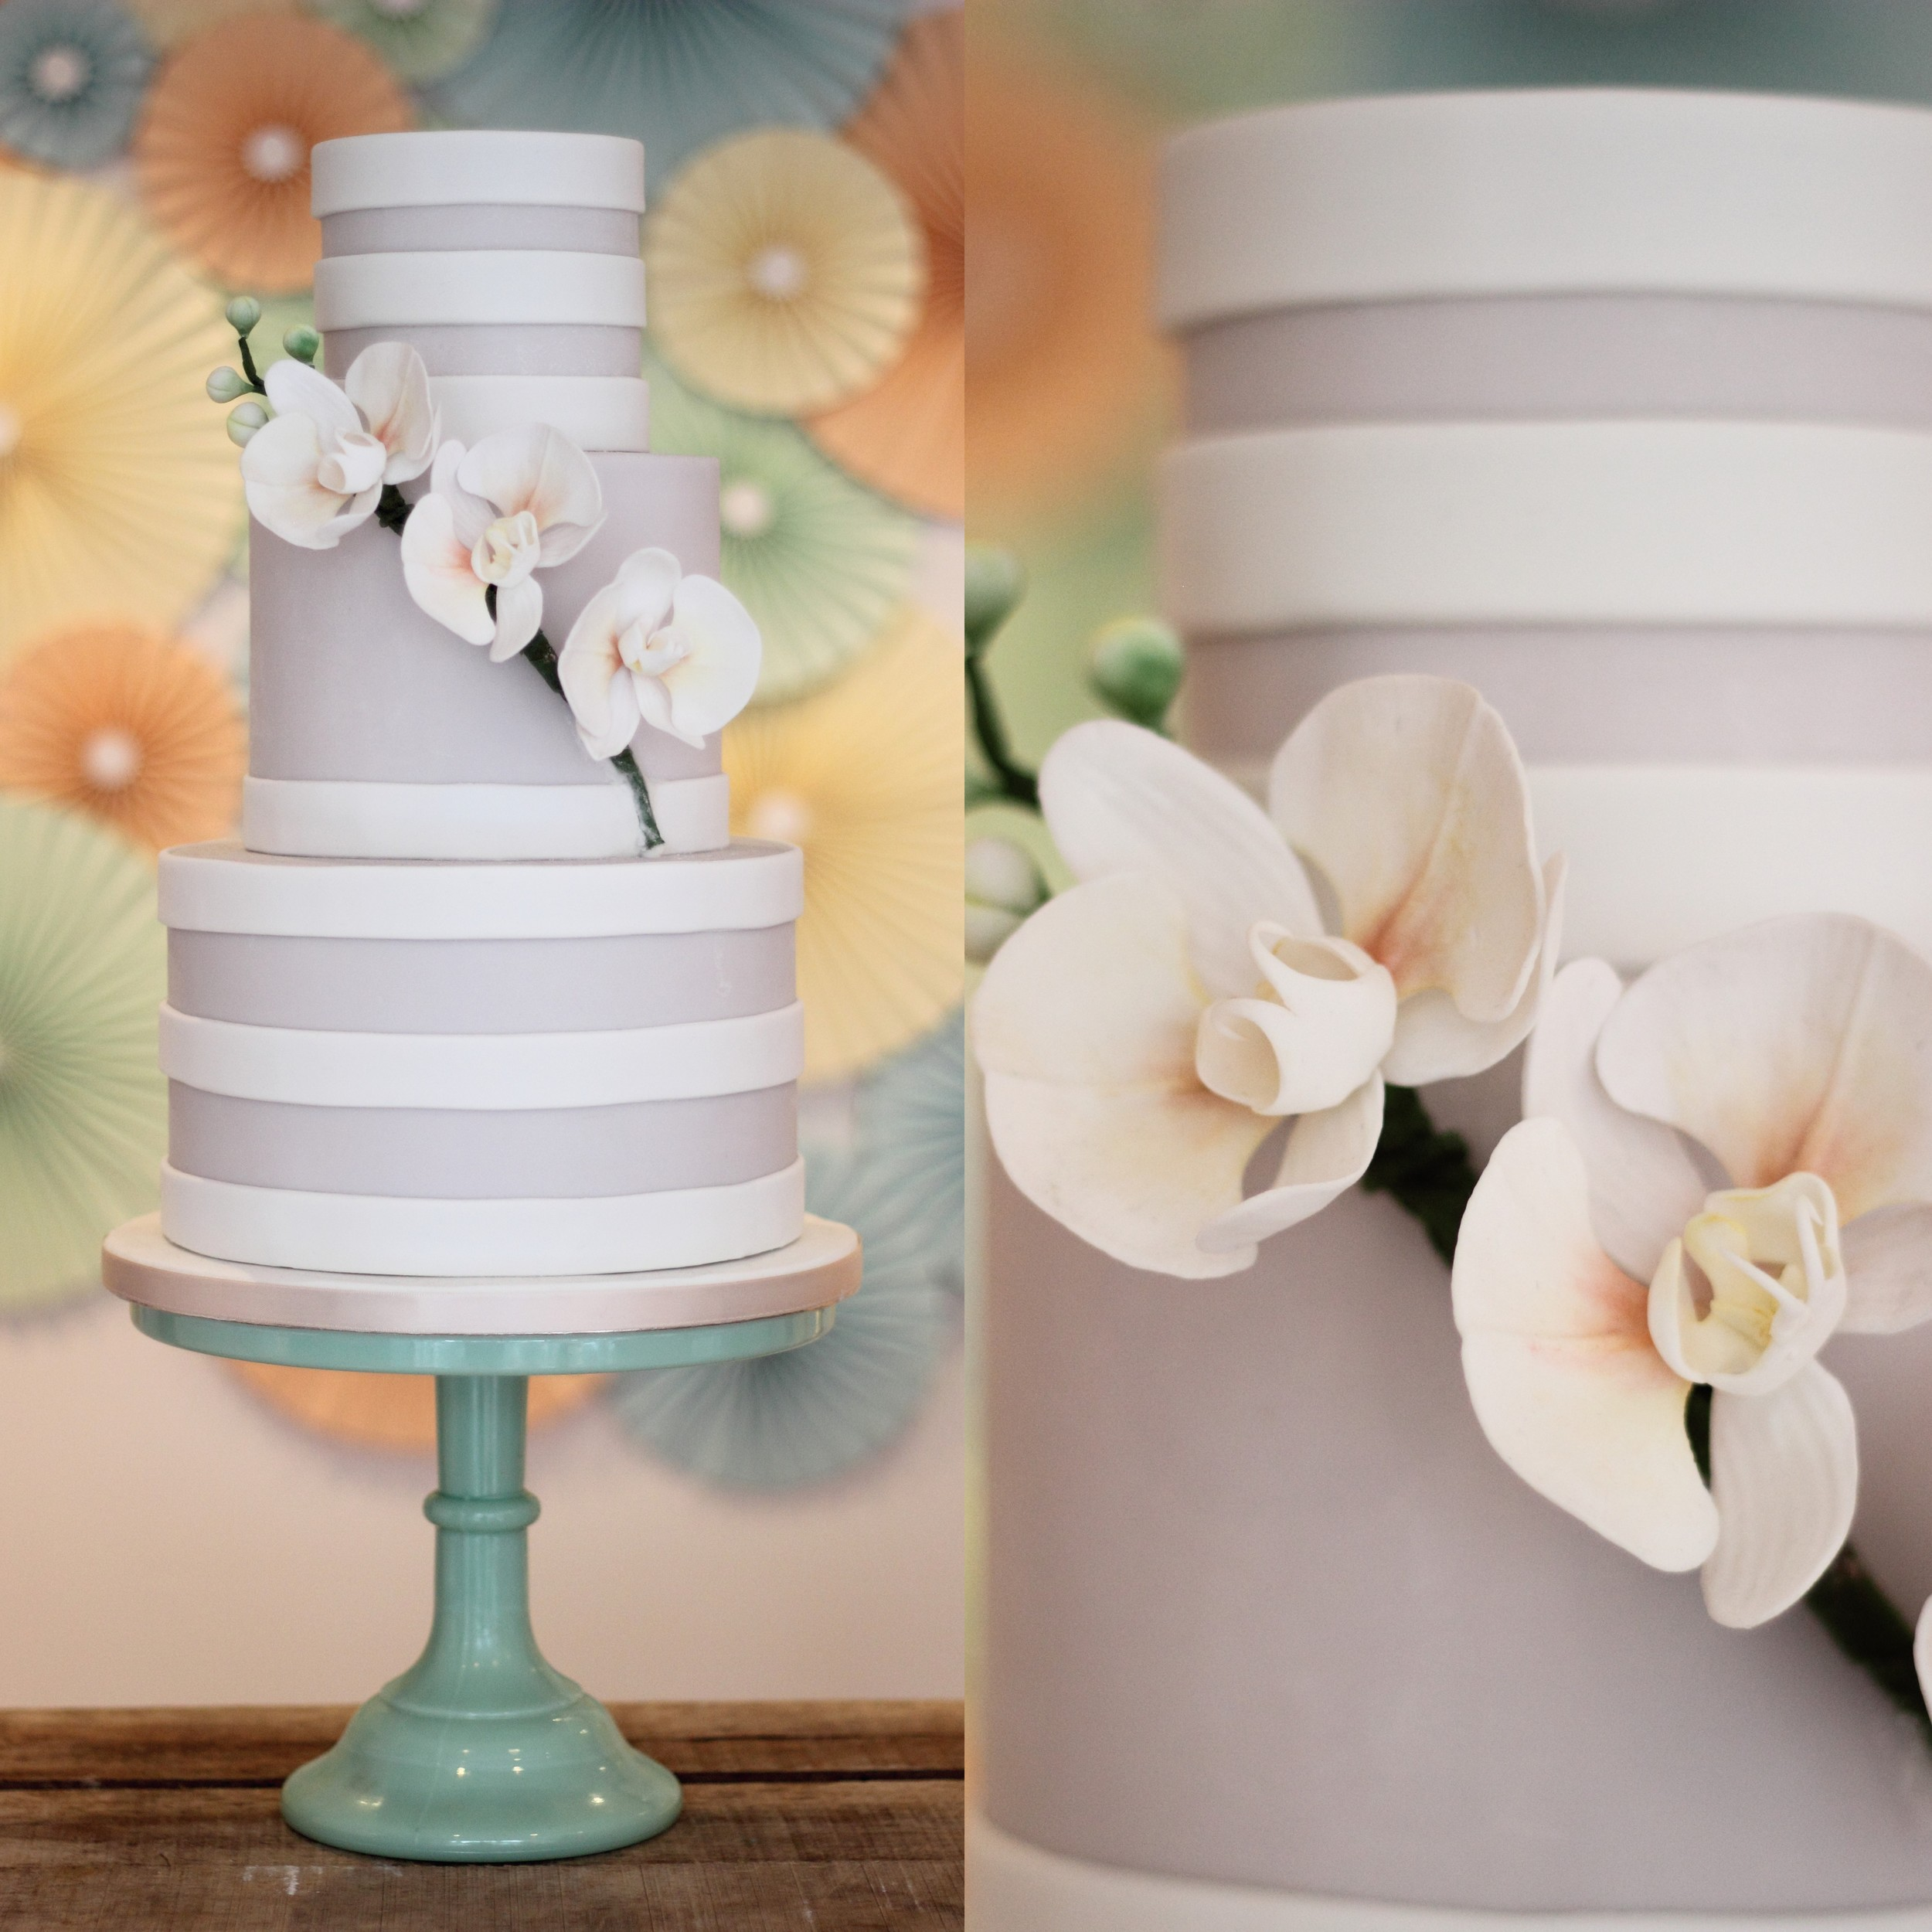 3 Tier grey orchid wedding cake